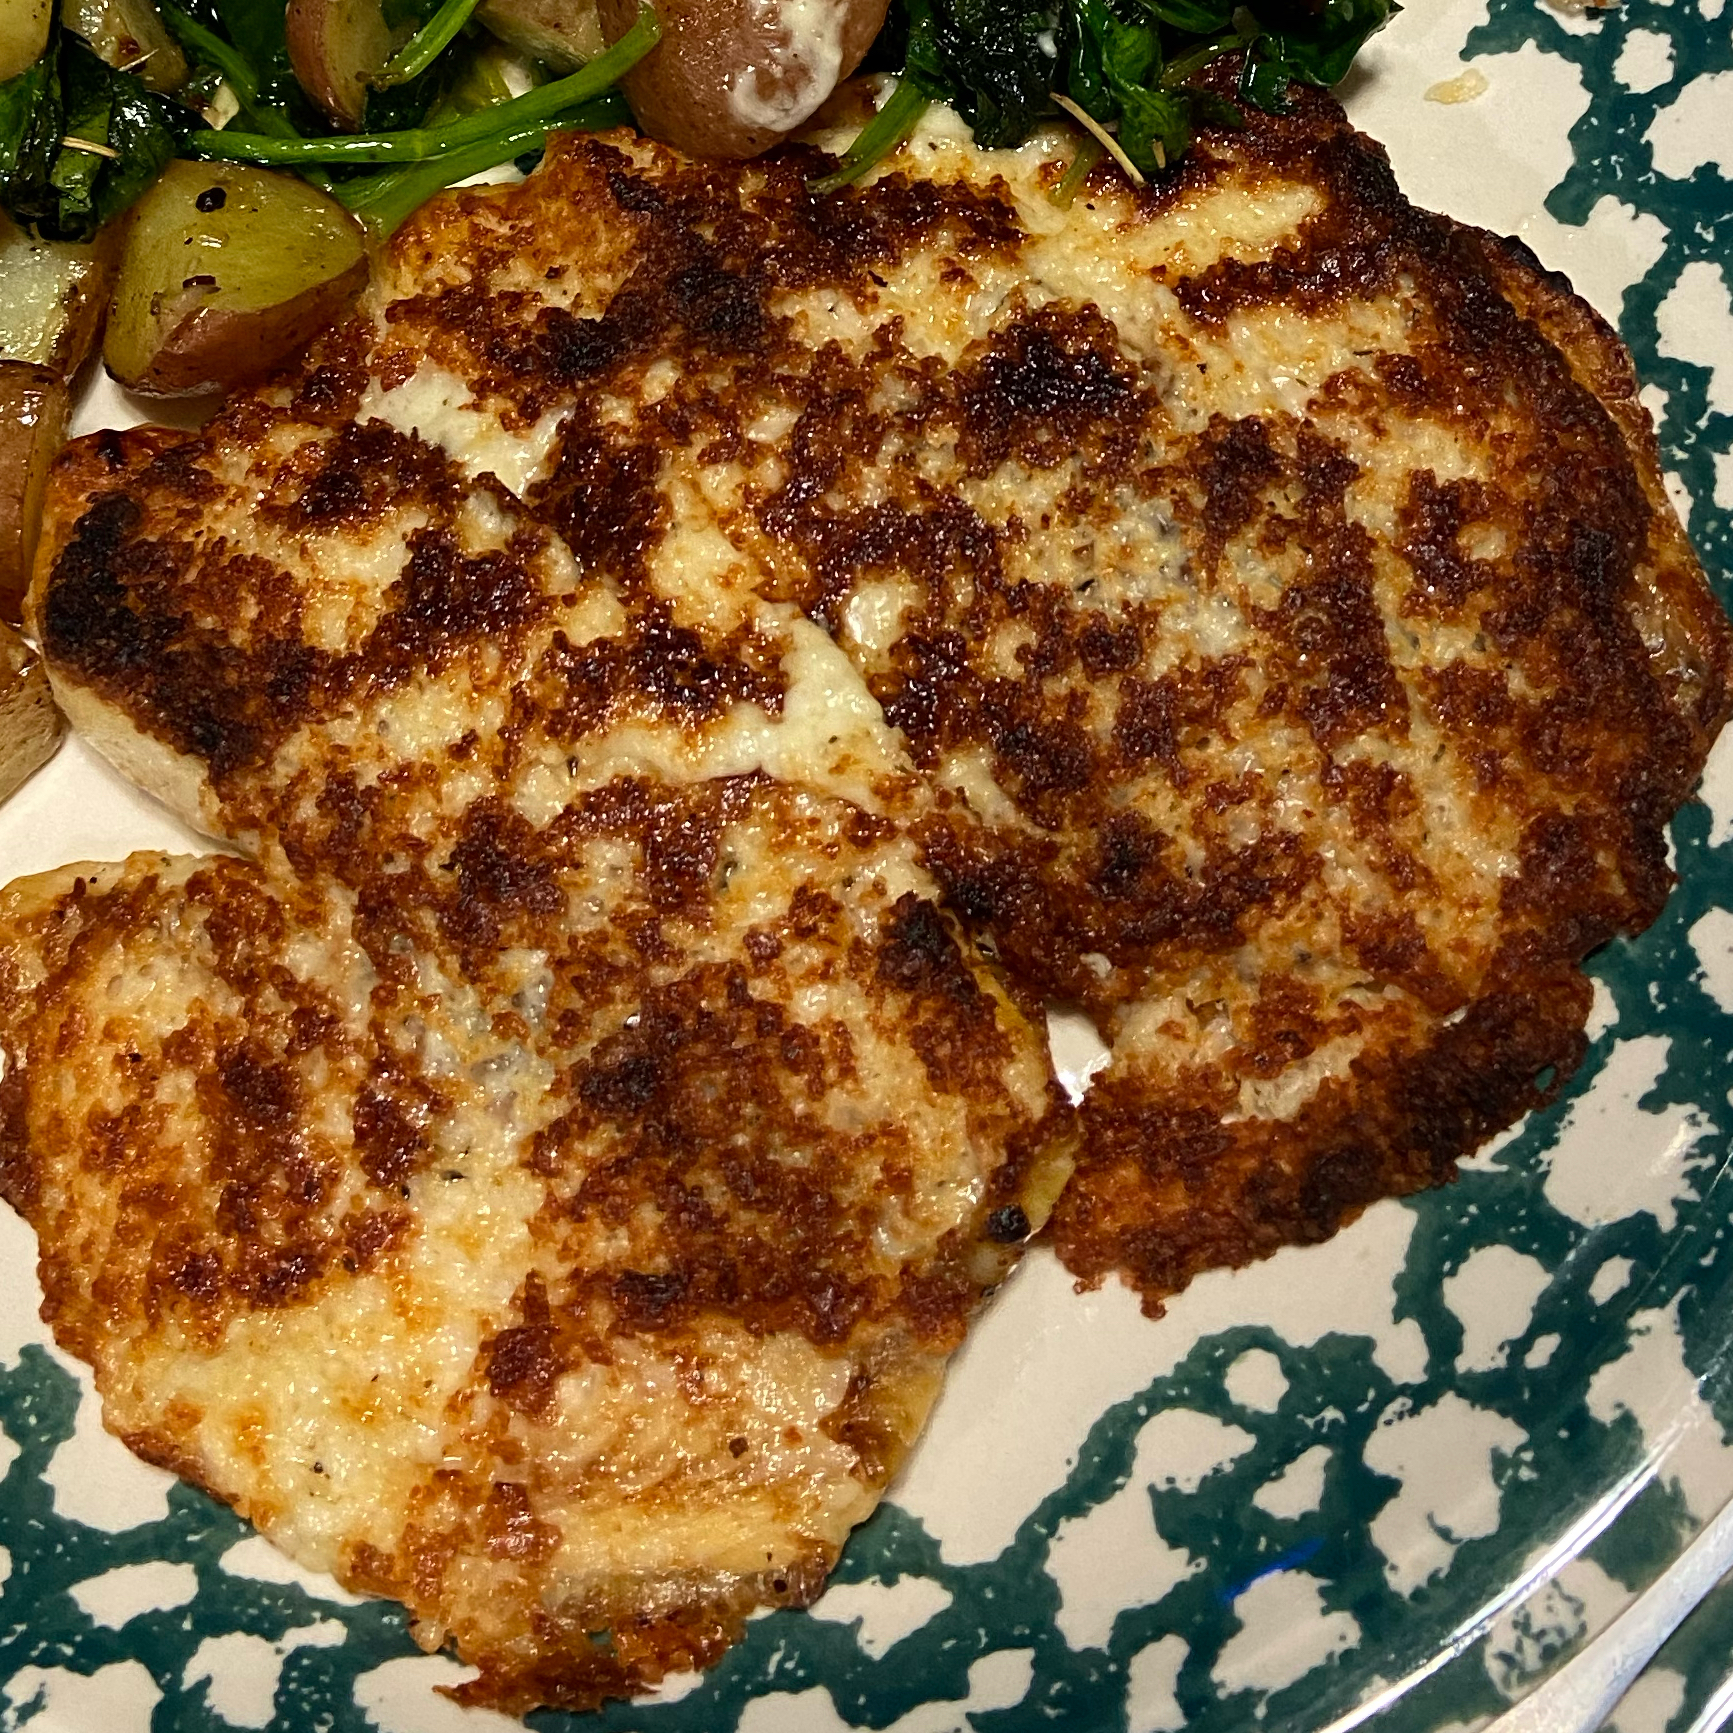 Broiled Parmesan-Lemon Tilapia